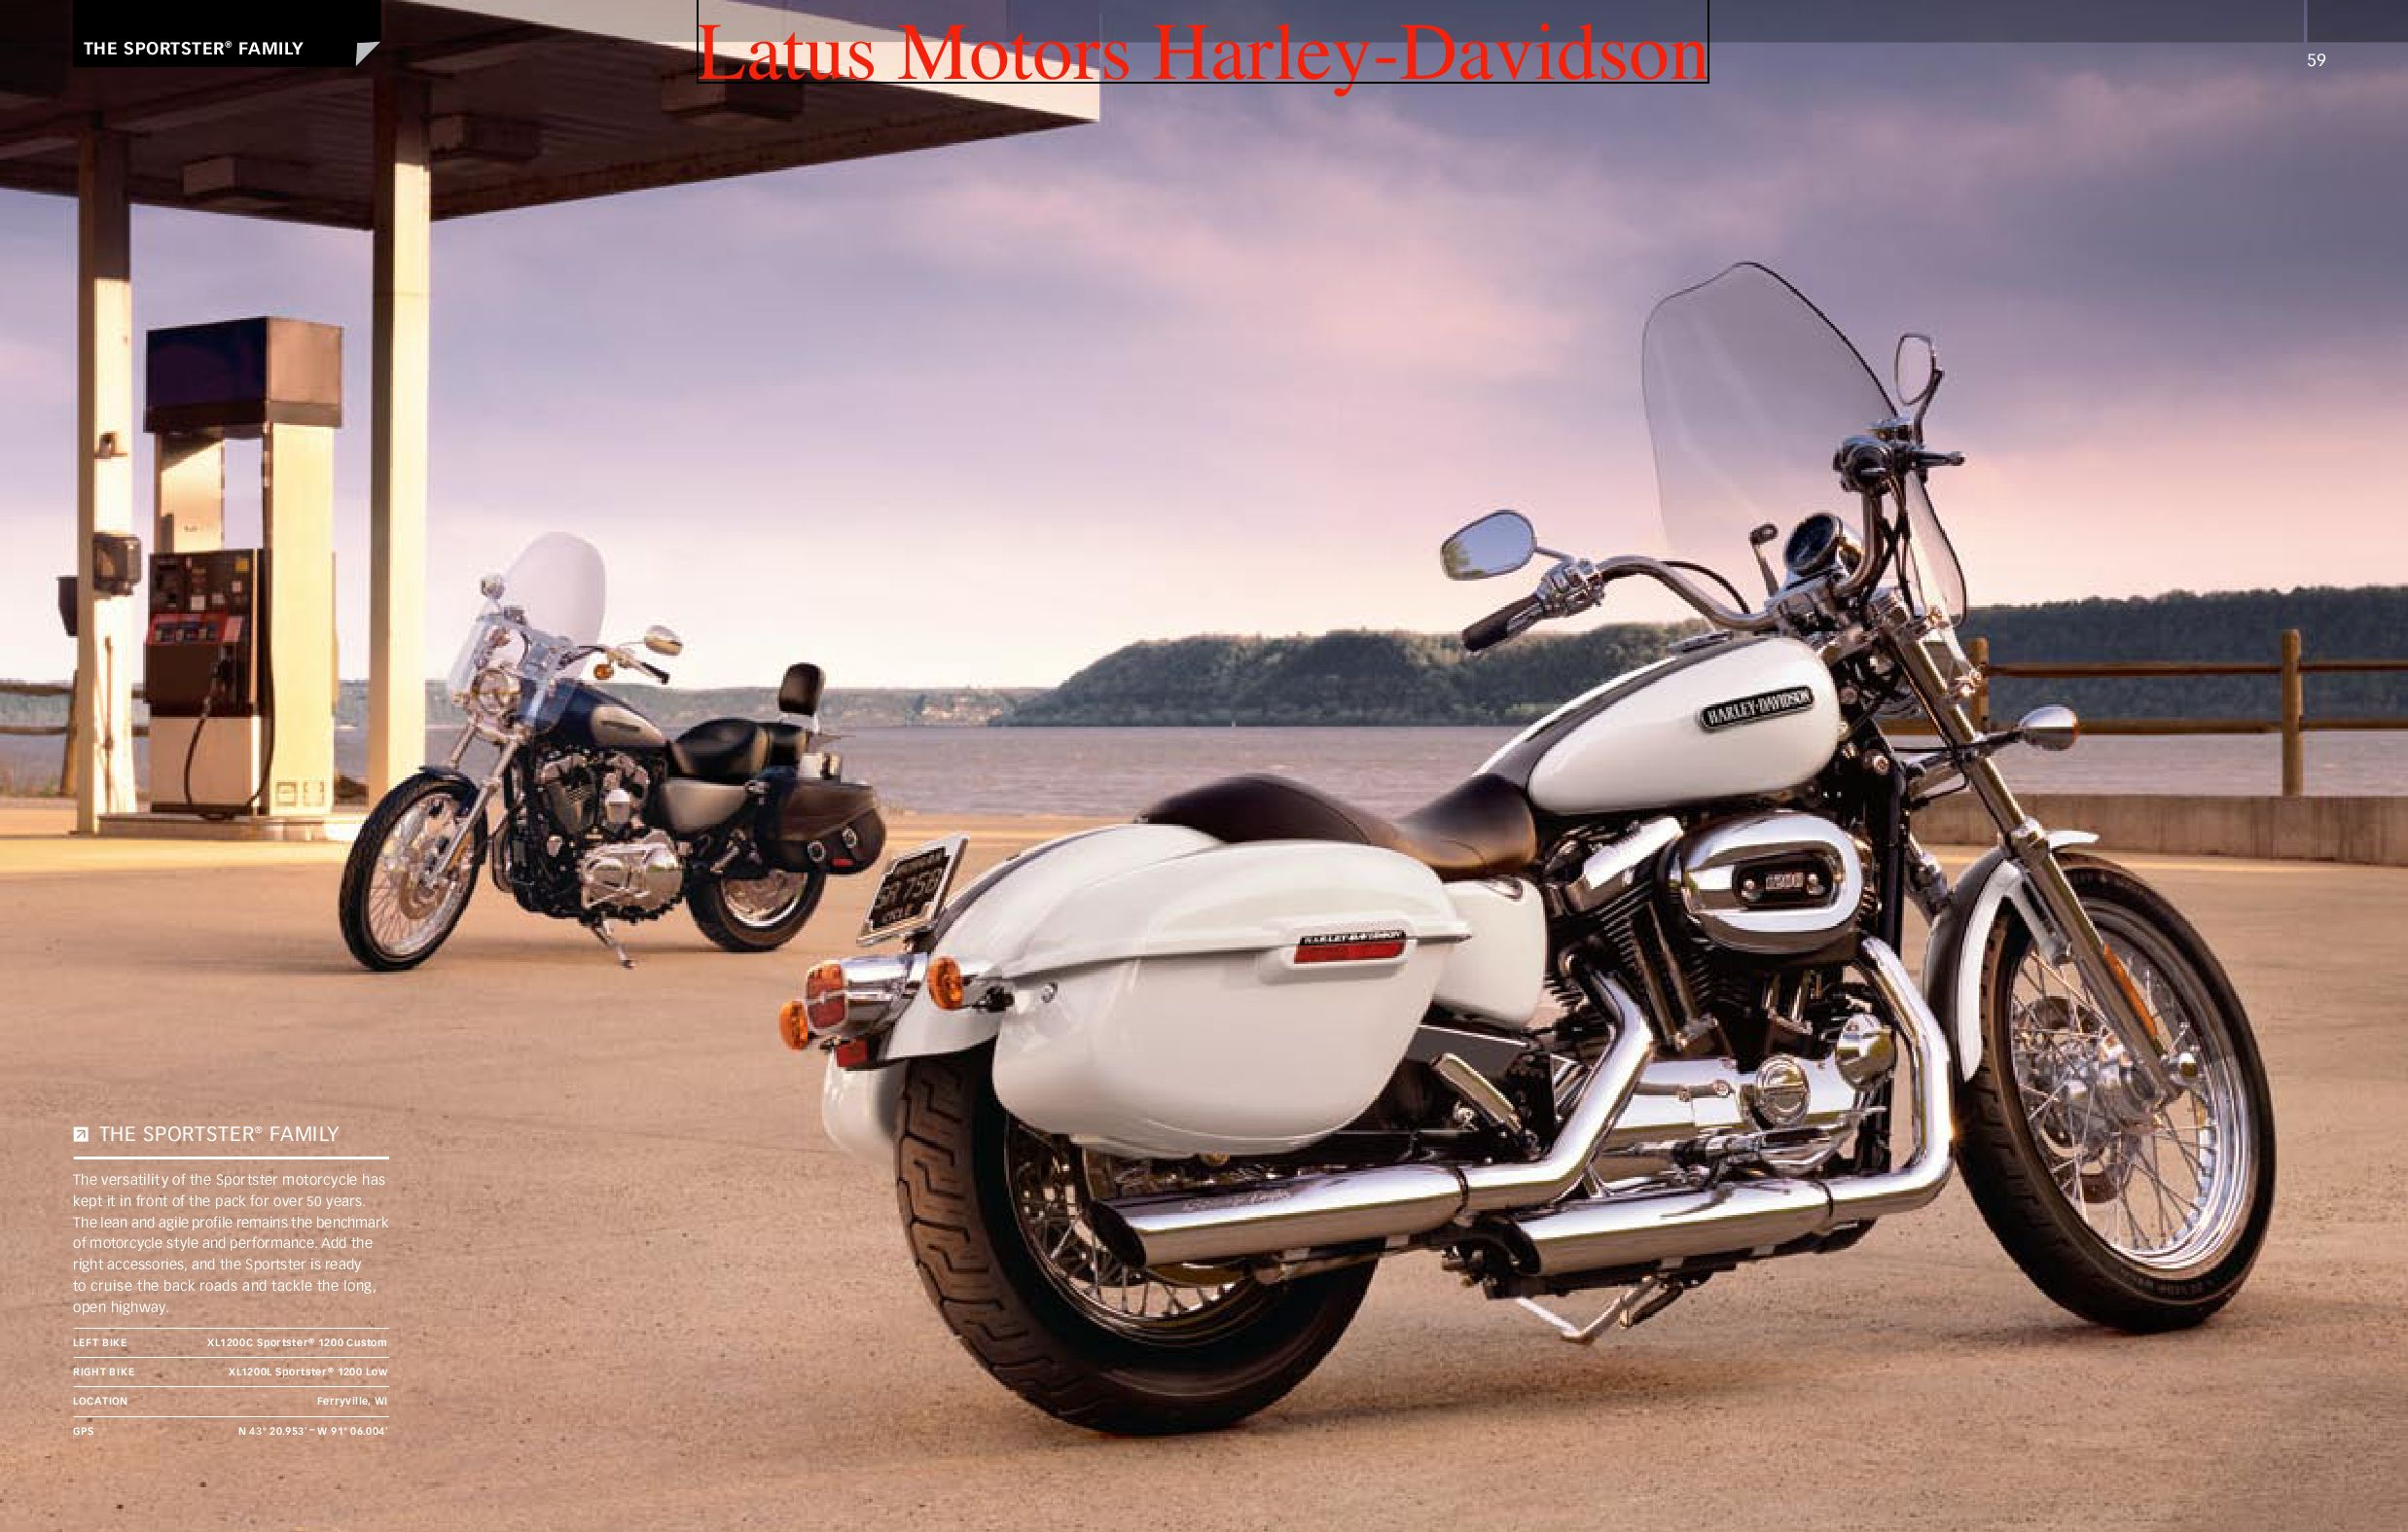 Harley Davidson Sportster Parts And Accessories Catalog By Honda Keihin Cv Carburetor Diagram Car Interior Design Of Portland Issuu